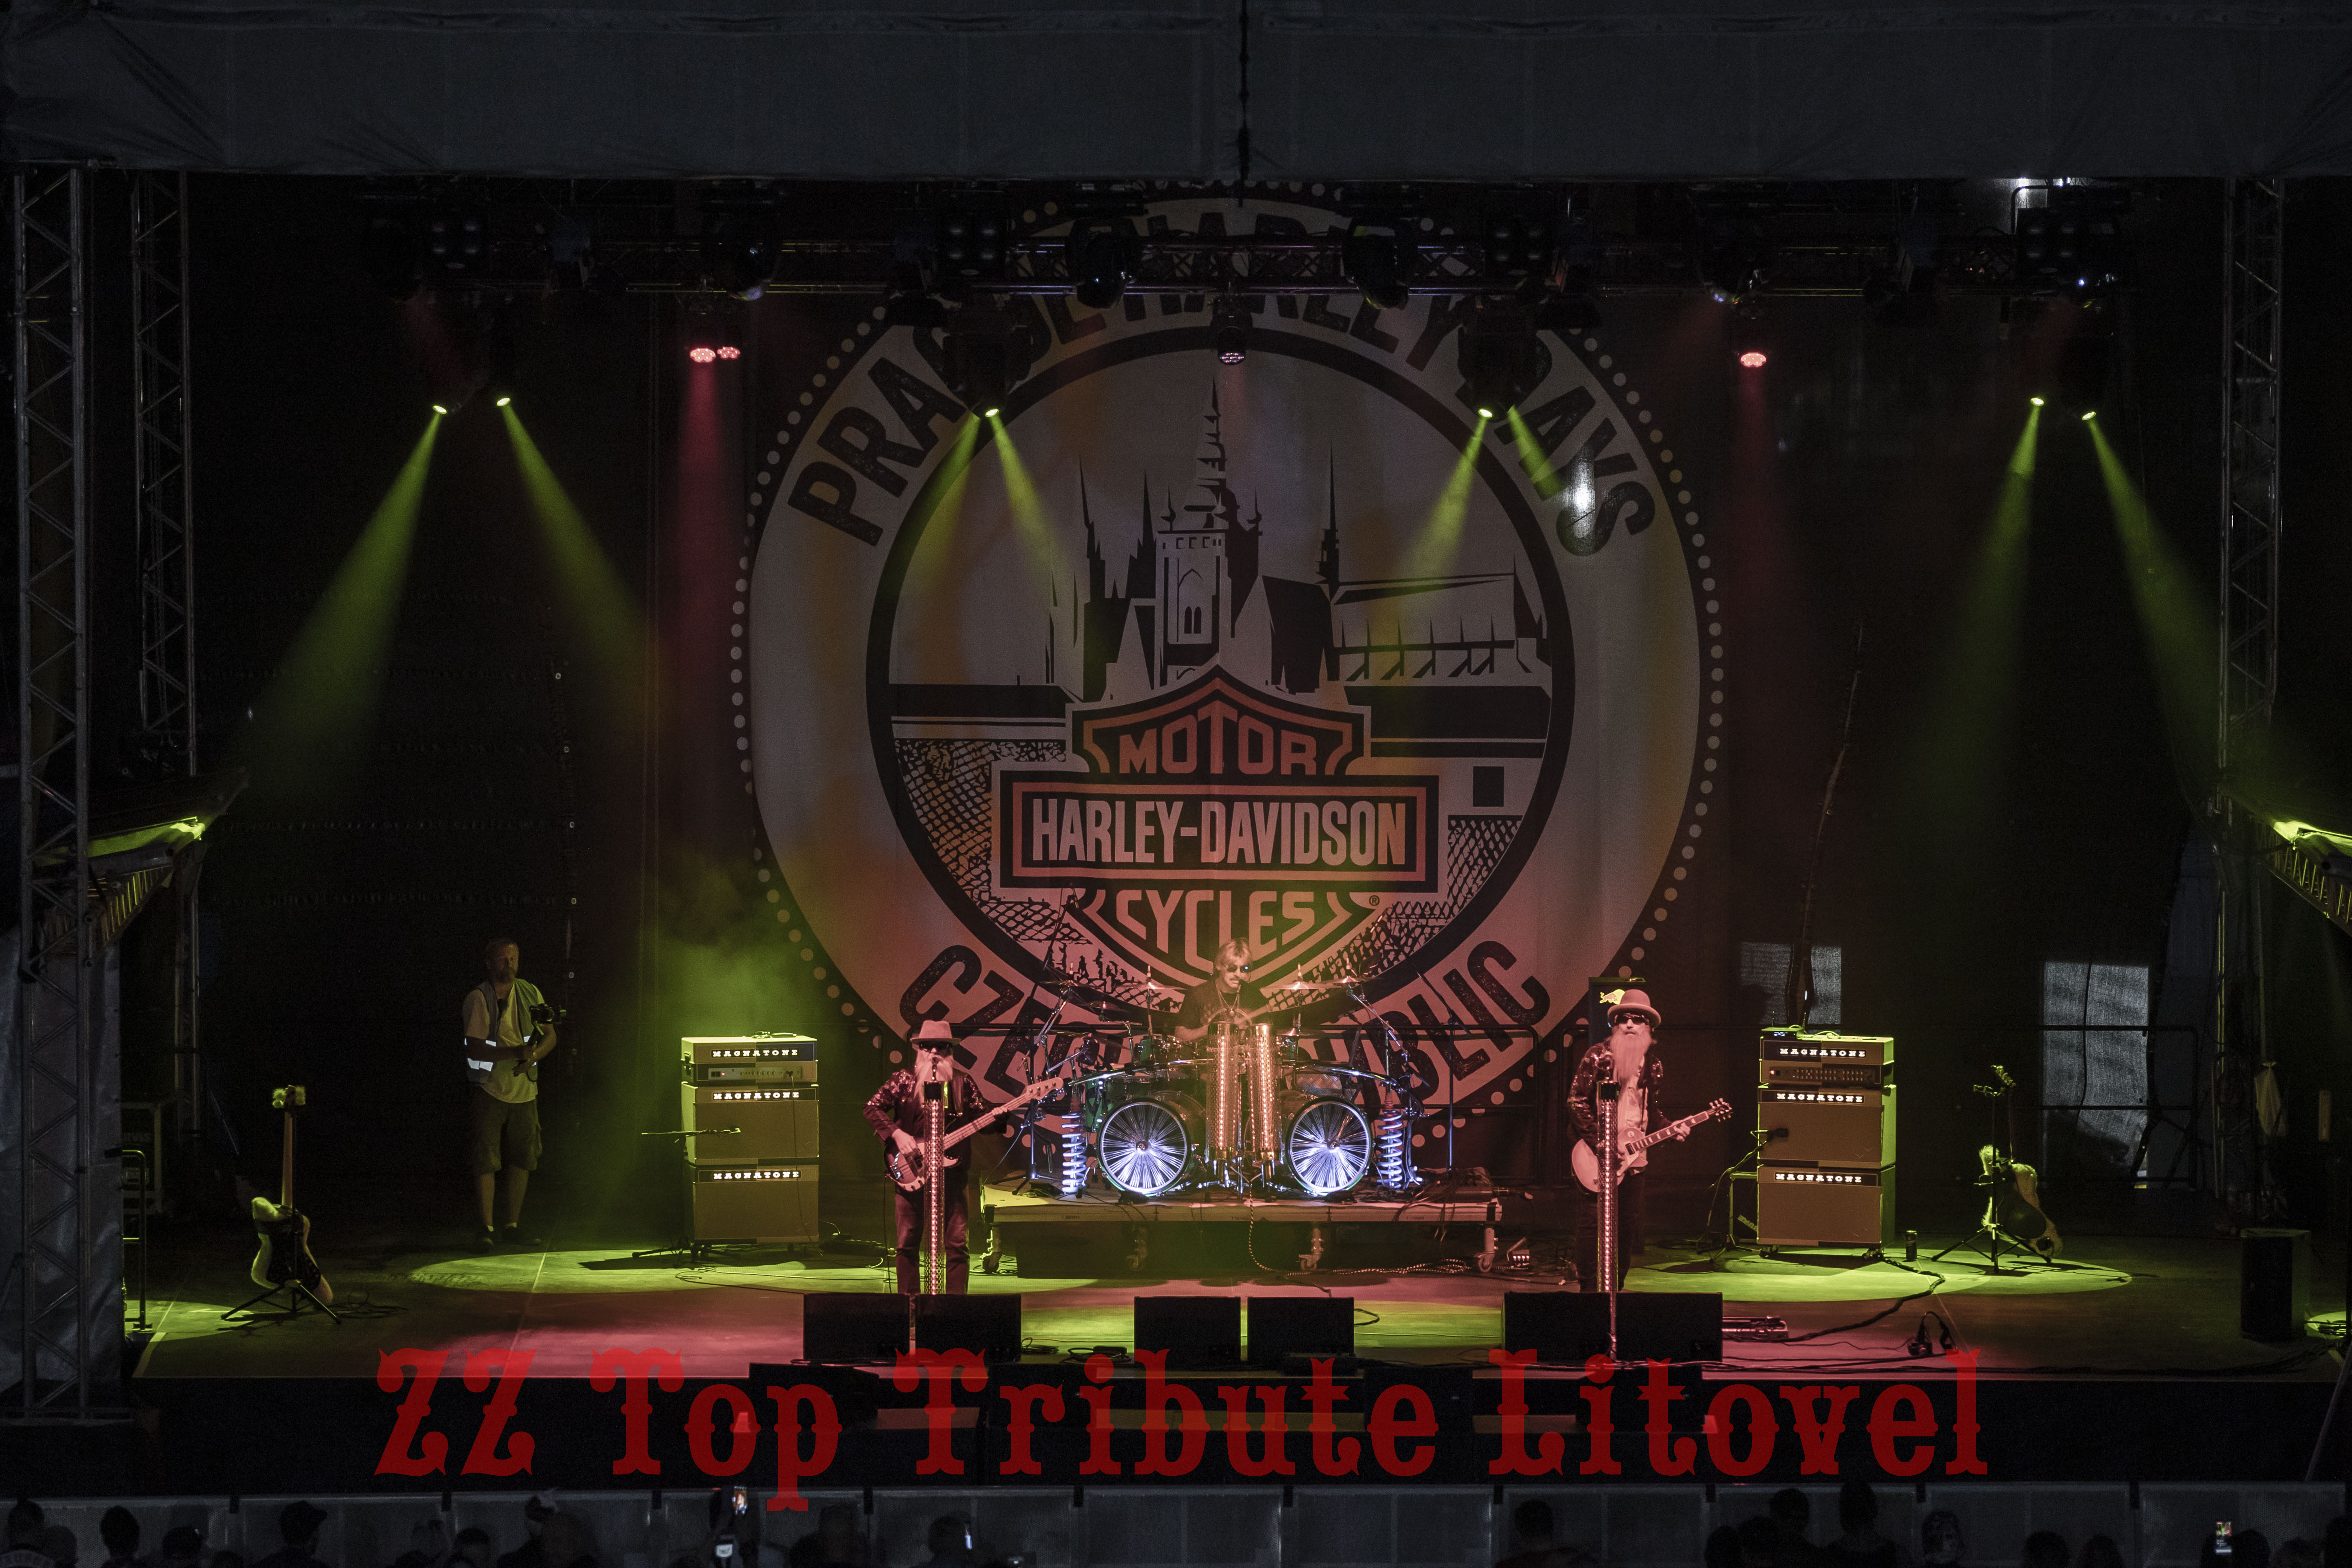 ZZ Top Revival-Tribute Litovel 110